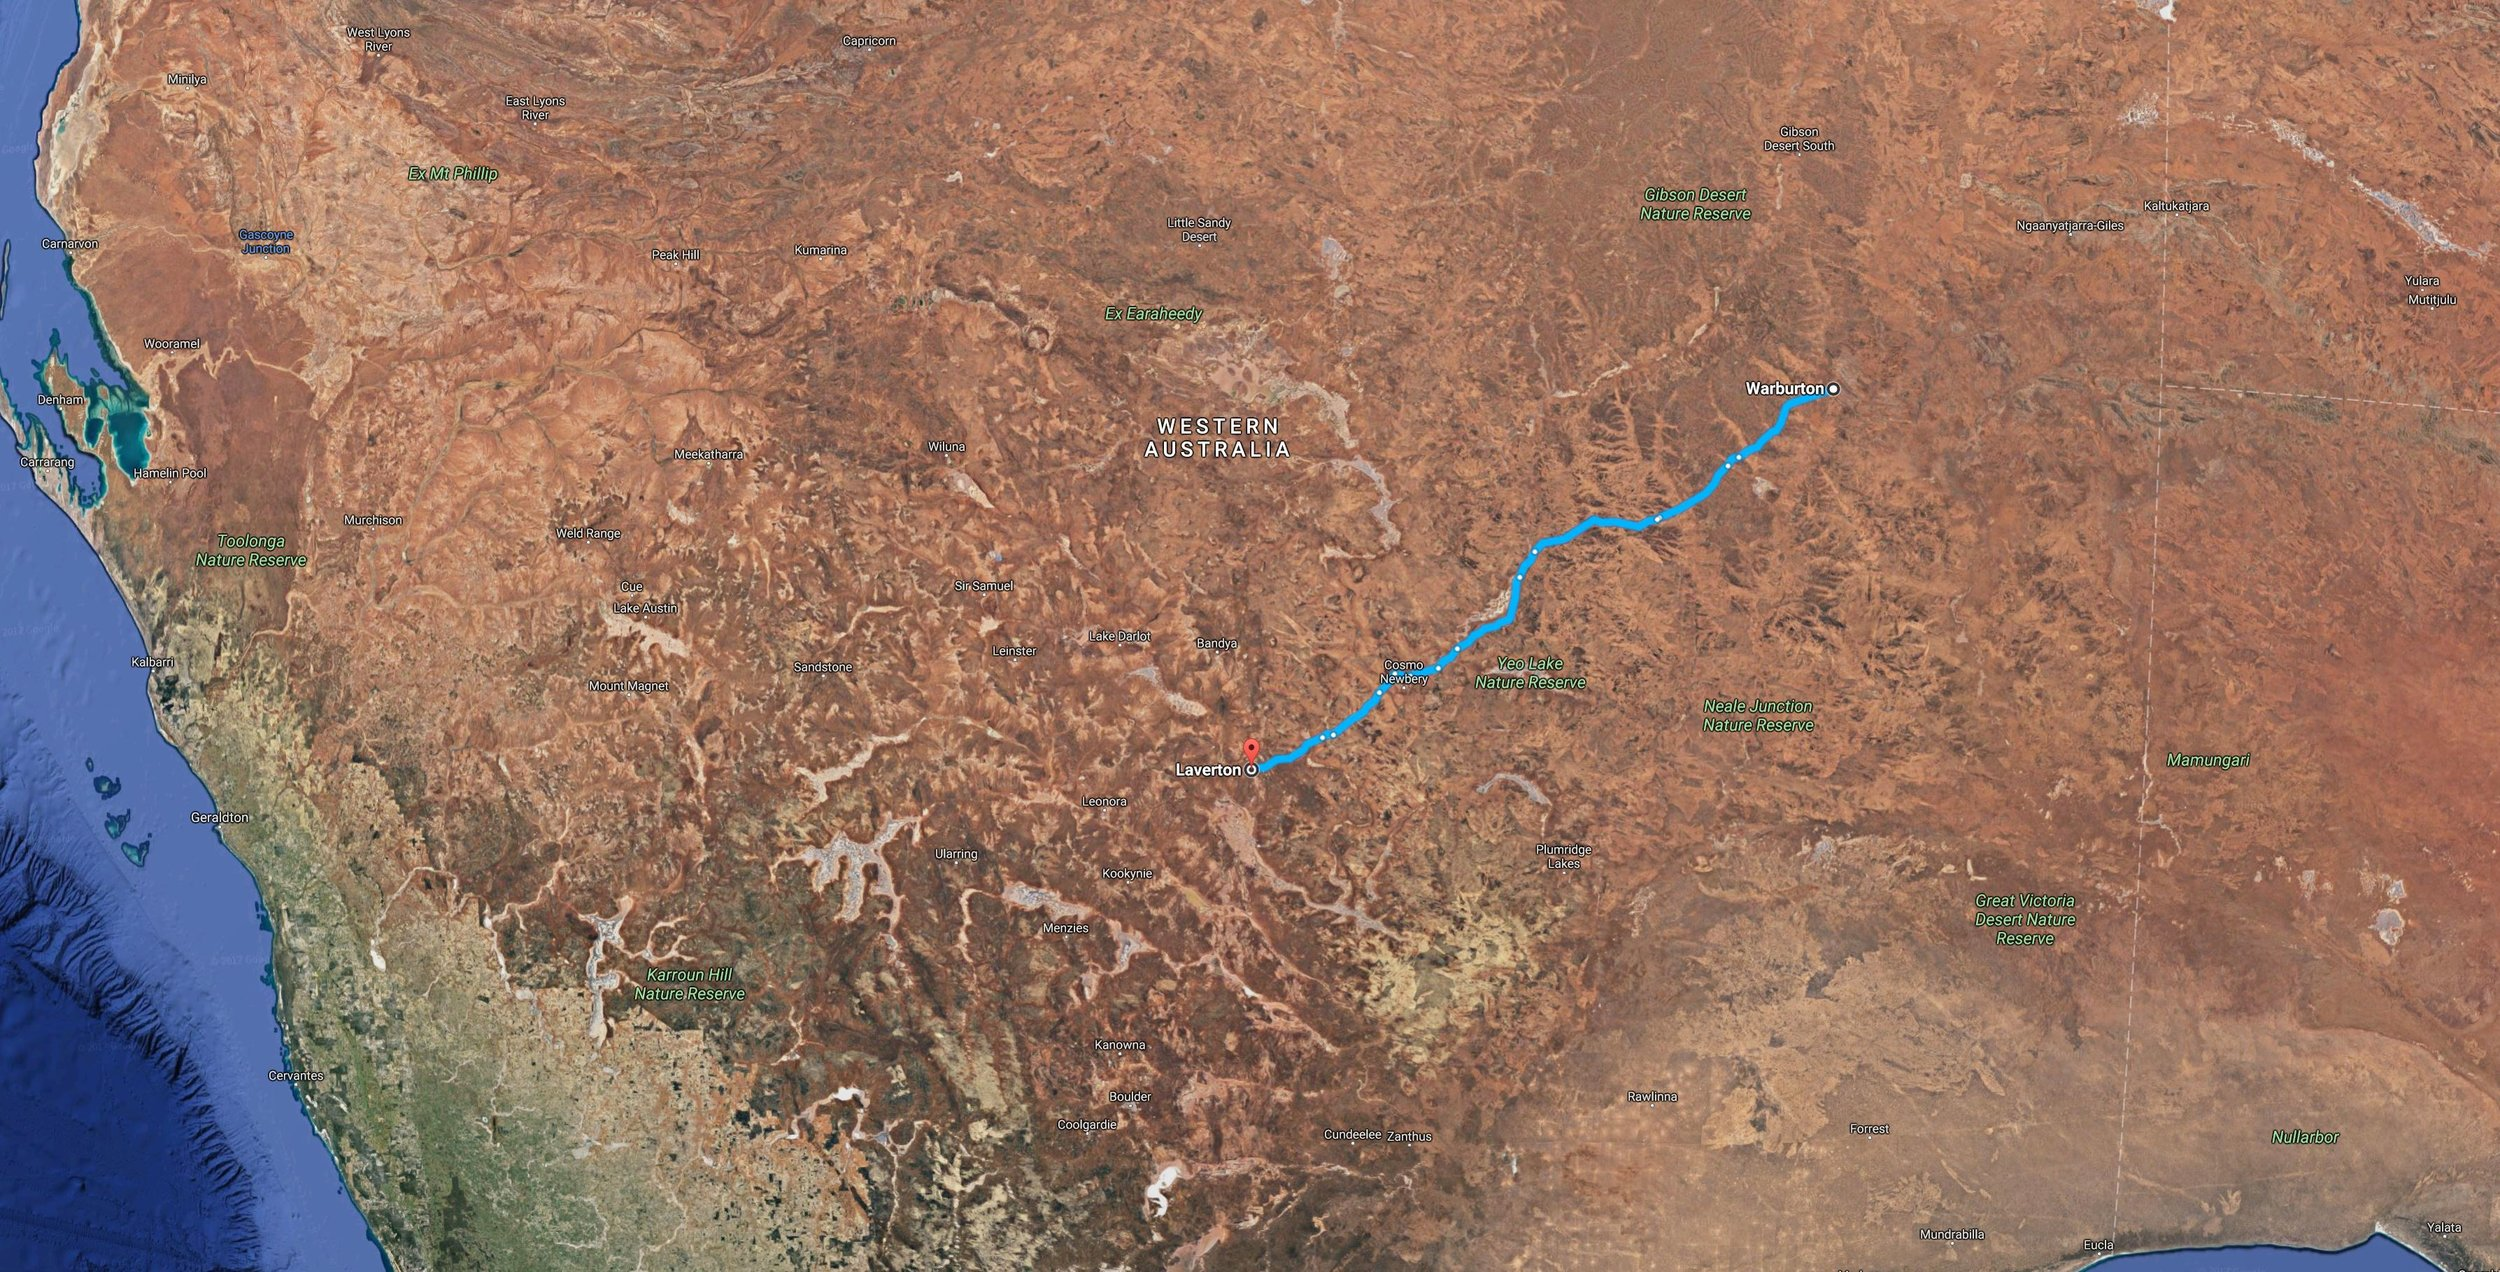 Click on image of route between Warburton & Laverton to check out the map